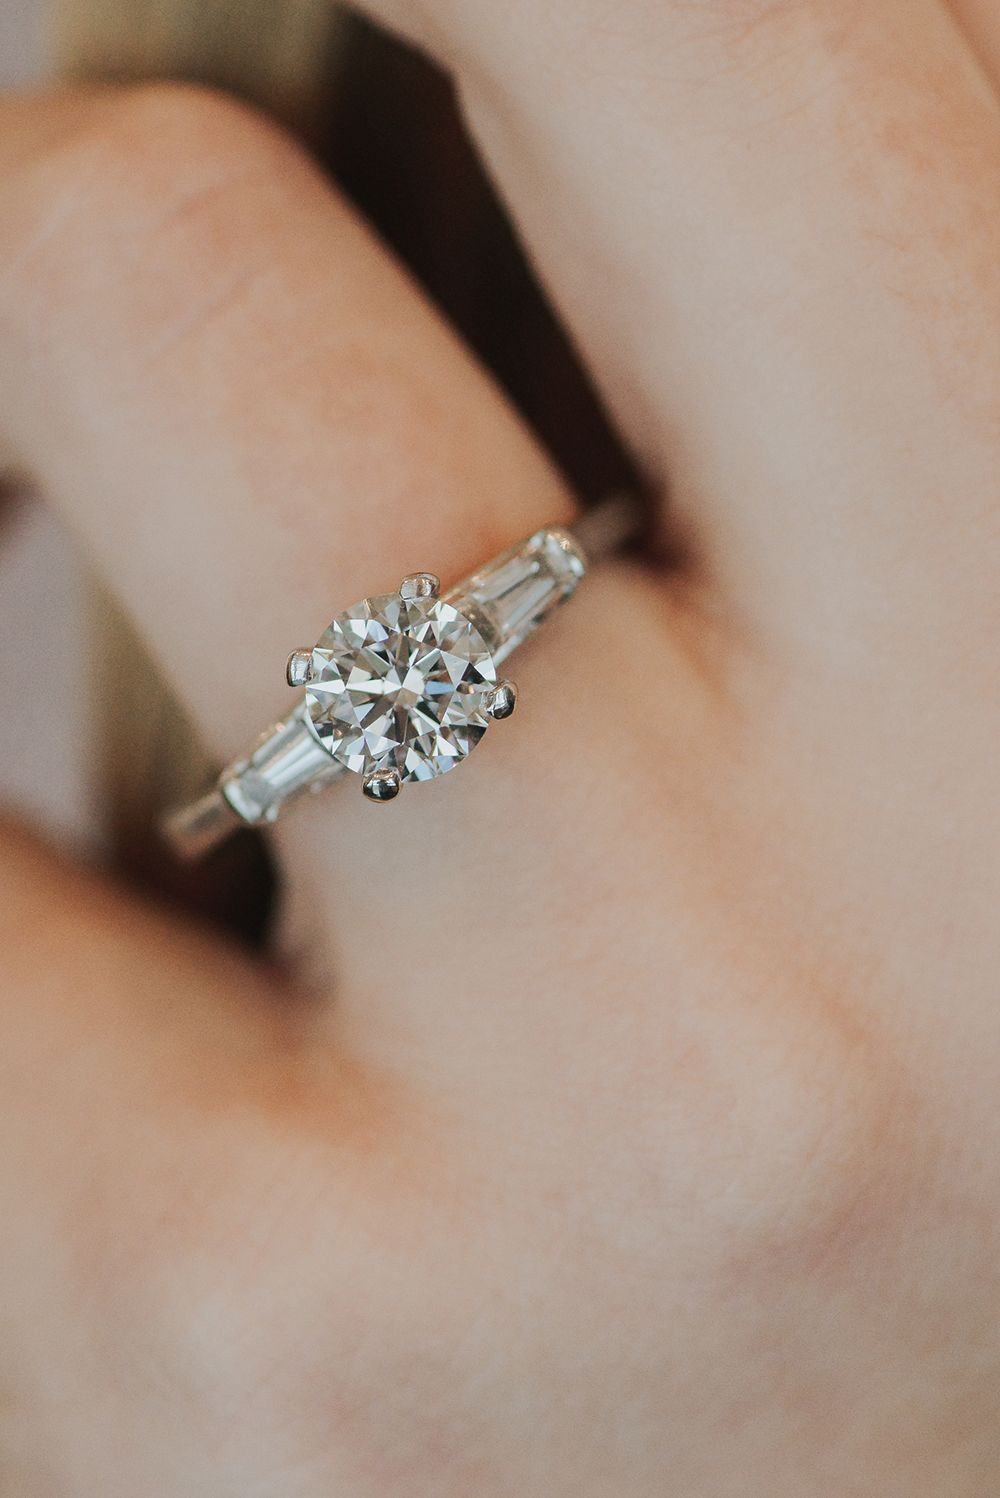 Ecofriendly Engagement Rings with Arctic Ice Diamonds